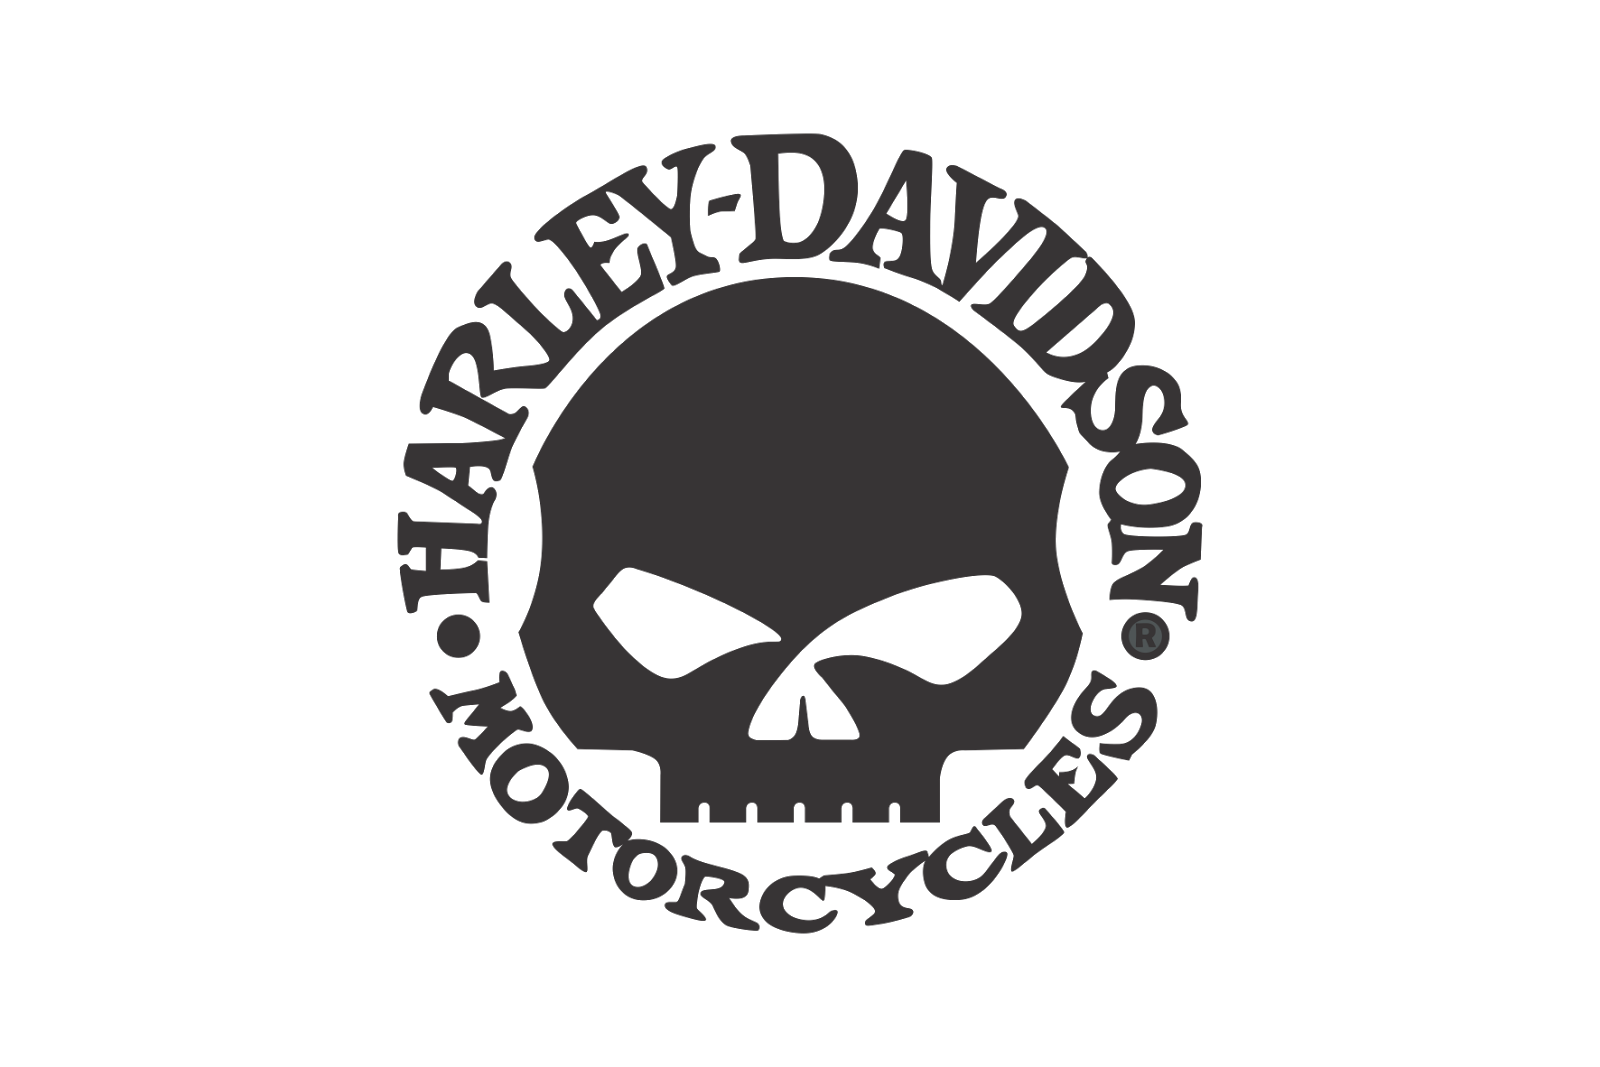 Free Harley Davidson Skull Logo Black And White, Download.